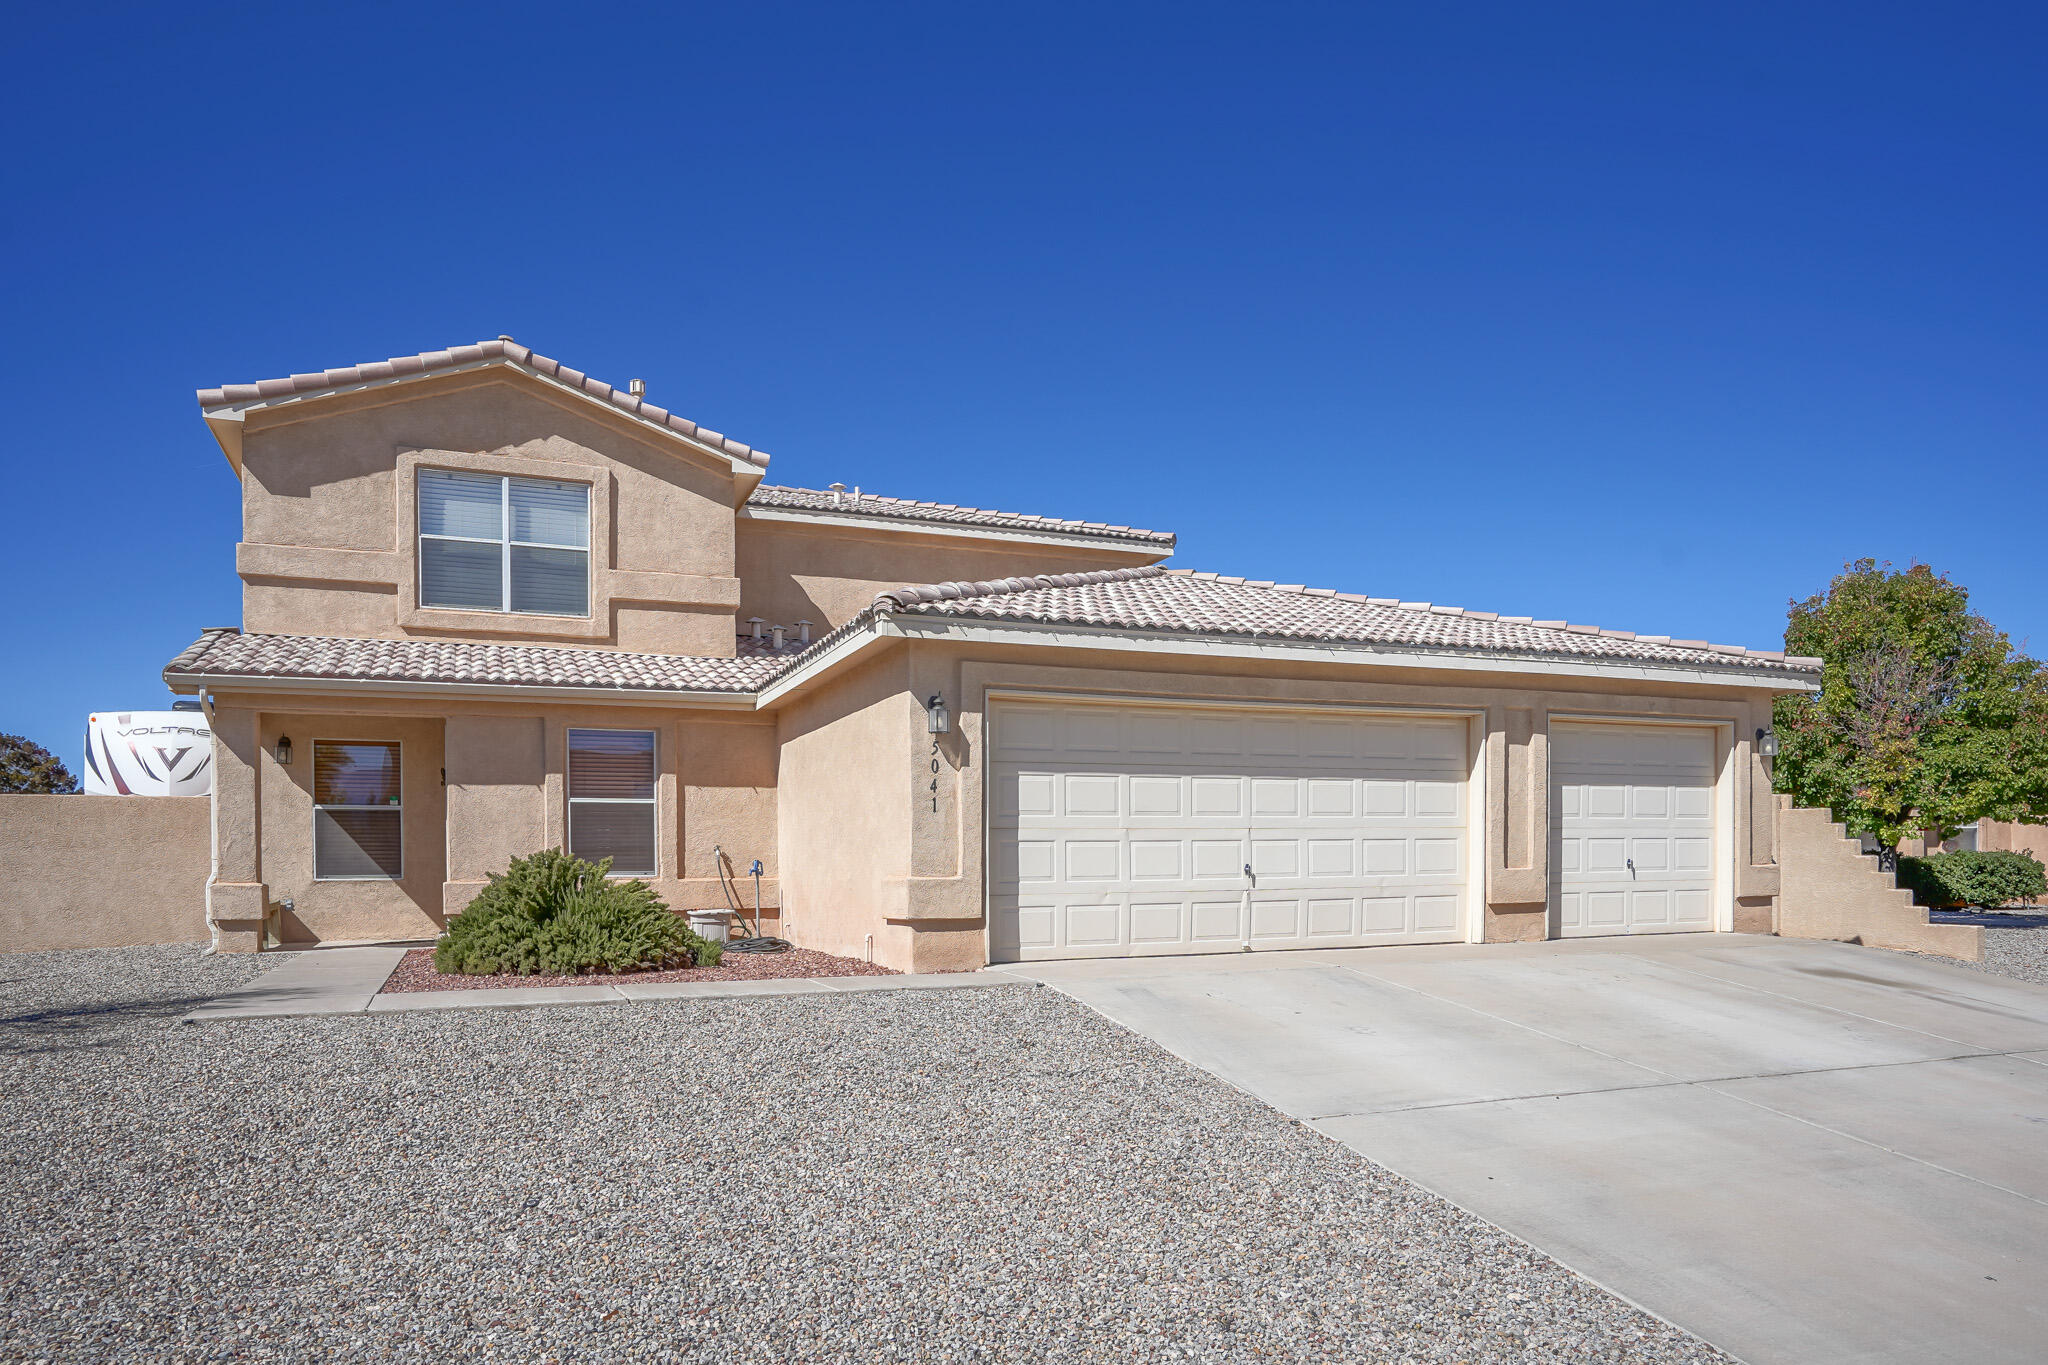 multiple offers received! Must-see two-story home with a pool situated on a large corner lot in Rio Rancho! Open Floorplan, bonus loft space, Spacious backyard with large covered patio space, room for an RV, and backyard access. Private in-ground swimming pool with waterfall feature! The private owner's suite is located on the main floor and features French doors, a separate shower, a soaking tub, and a large walk-in closet. The open kitchen is perfect for entertaining as it looks out into the Living room and dining area! Three Car Garage! Quick access to 550 and the town of Bernalillo! Escape for a day trip or weekend away to Jemez Springs, only 44 minutes away! Take a virtual walkthrough tour today, or schedule a private showing!